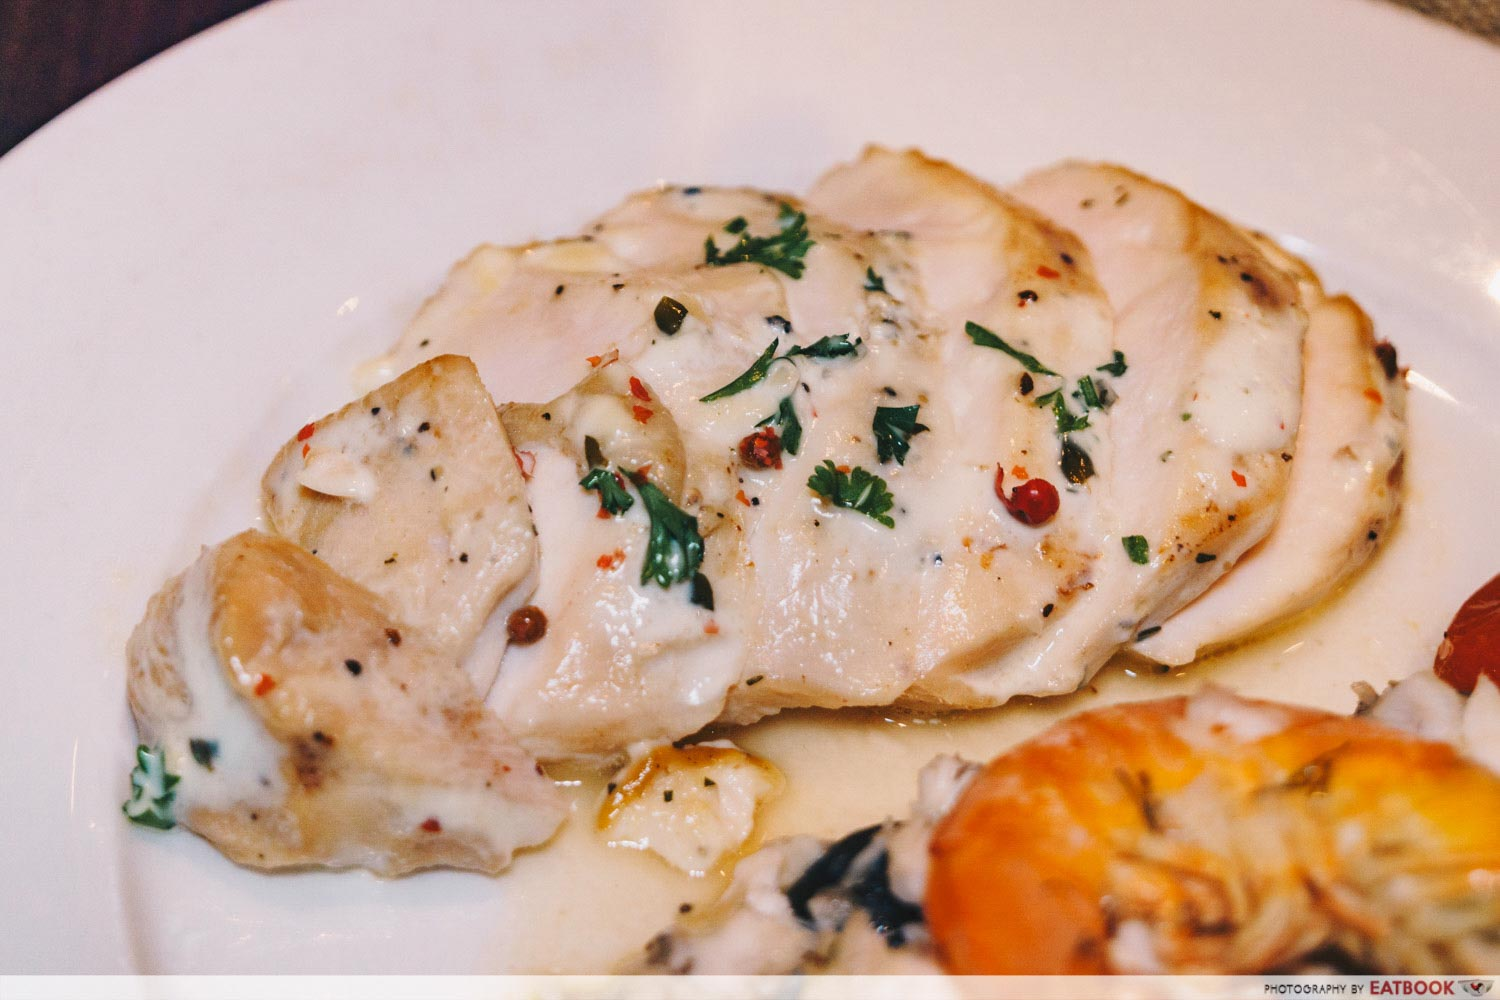 The Square - Sous Vide Chicken Breast